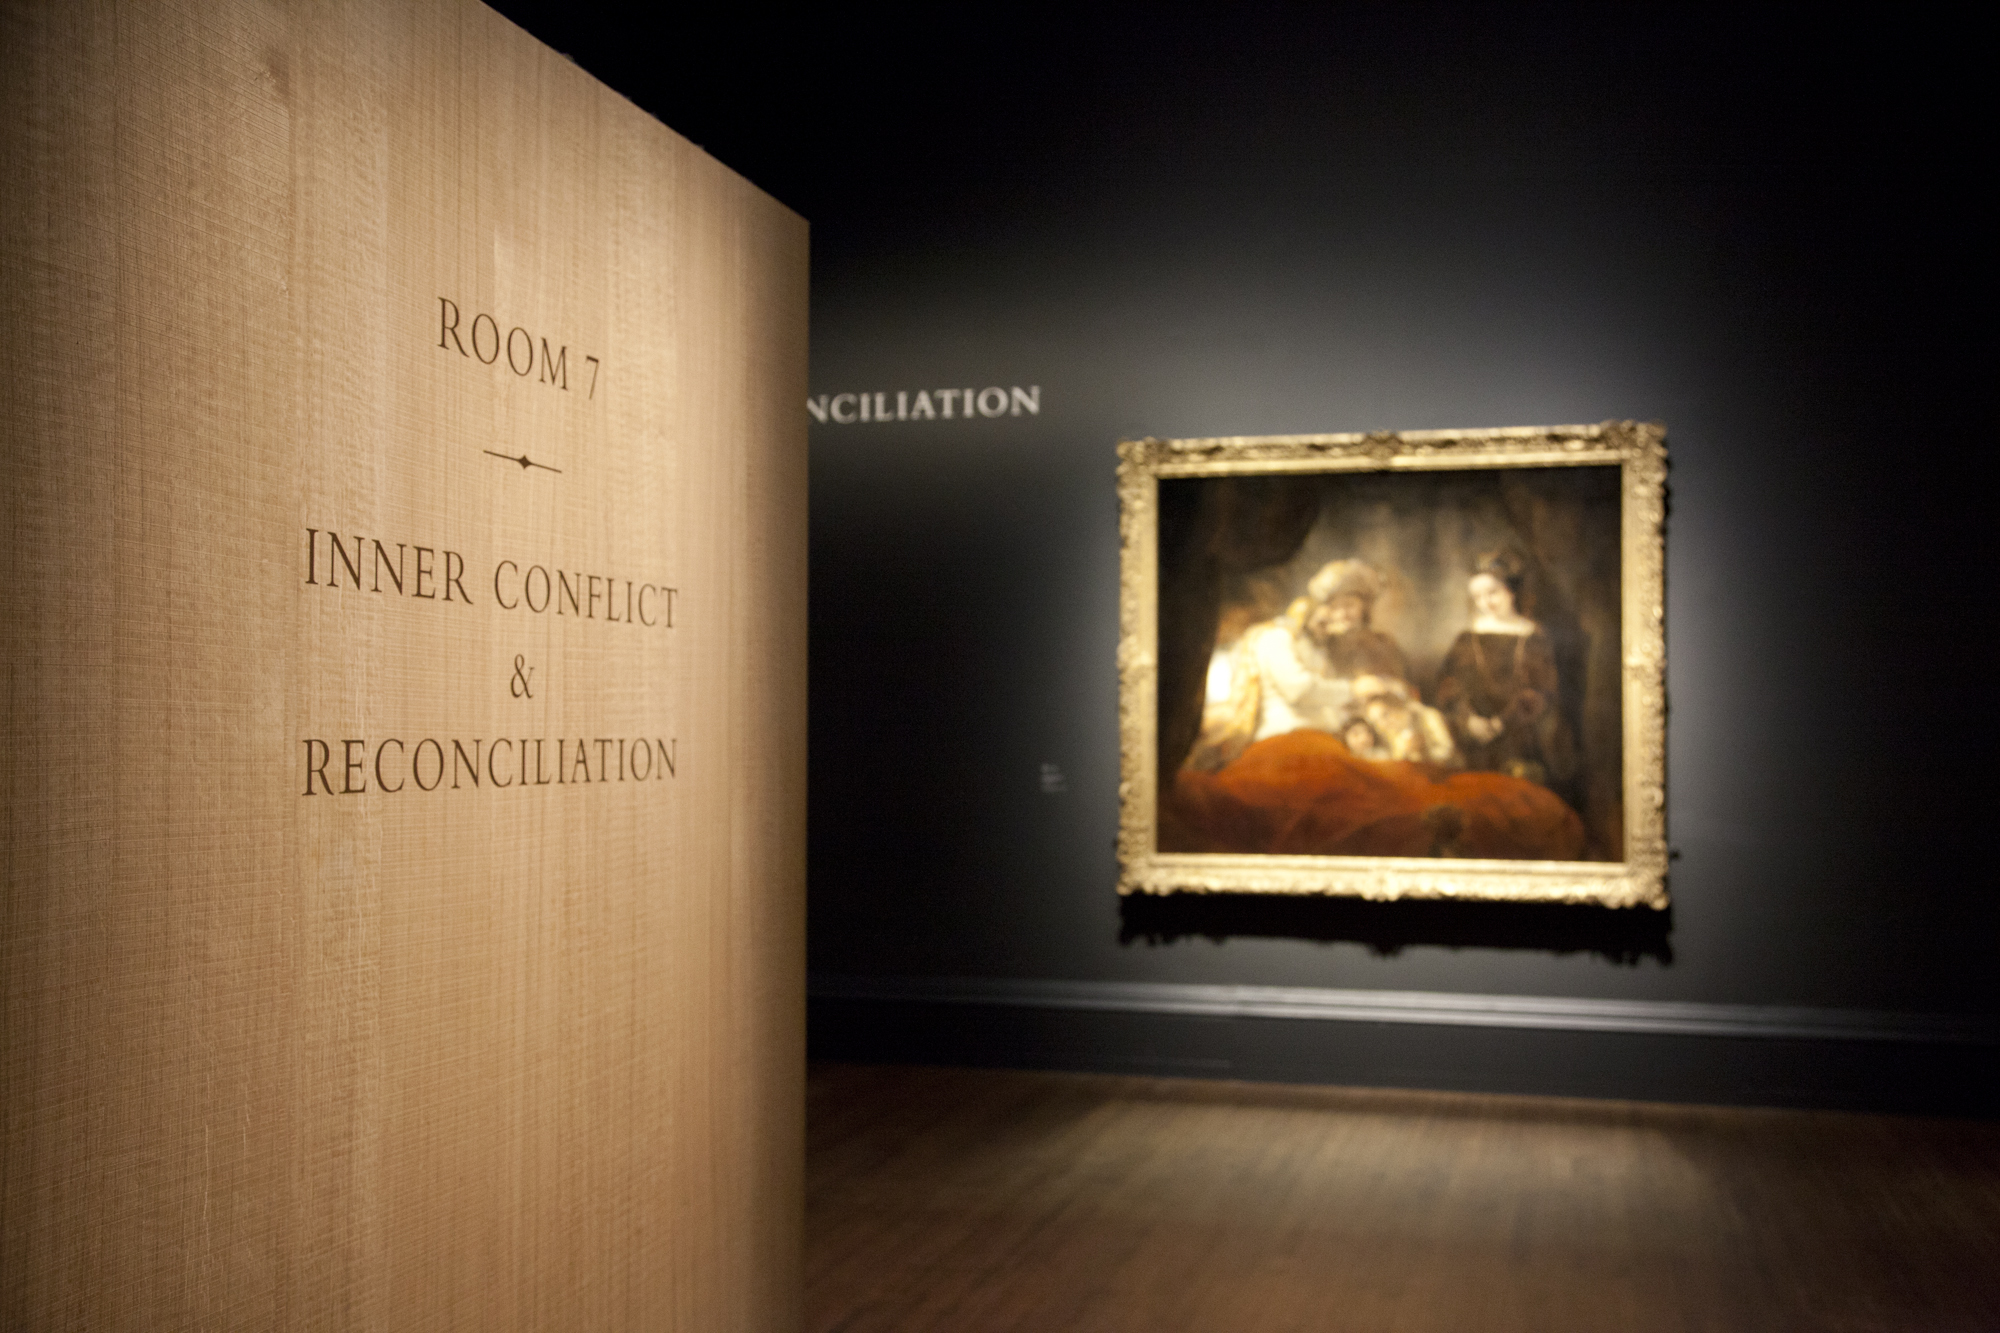 Photograph of Rembrandt Exhibition Inner Conflict and Reconciliation at the National Gallery in London